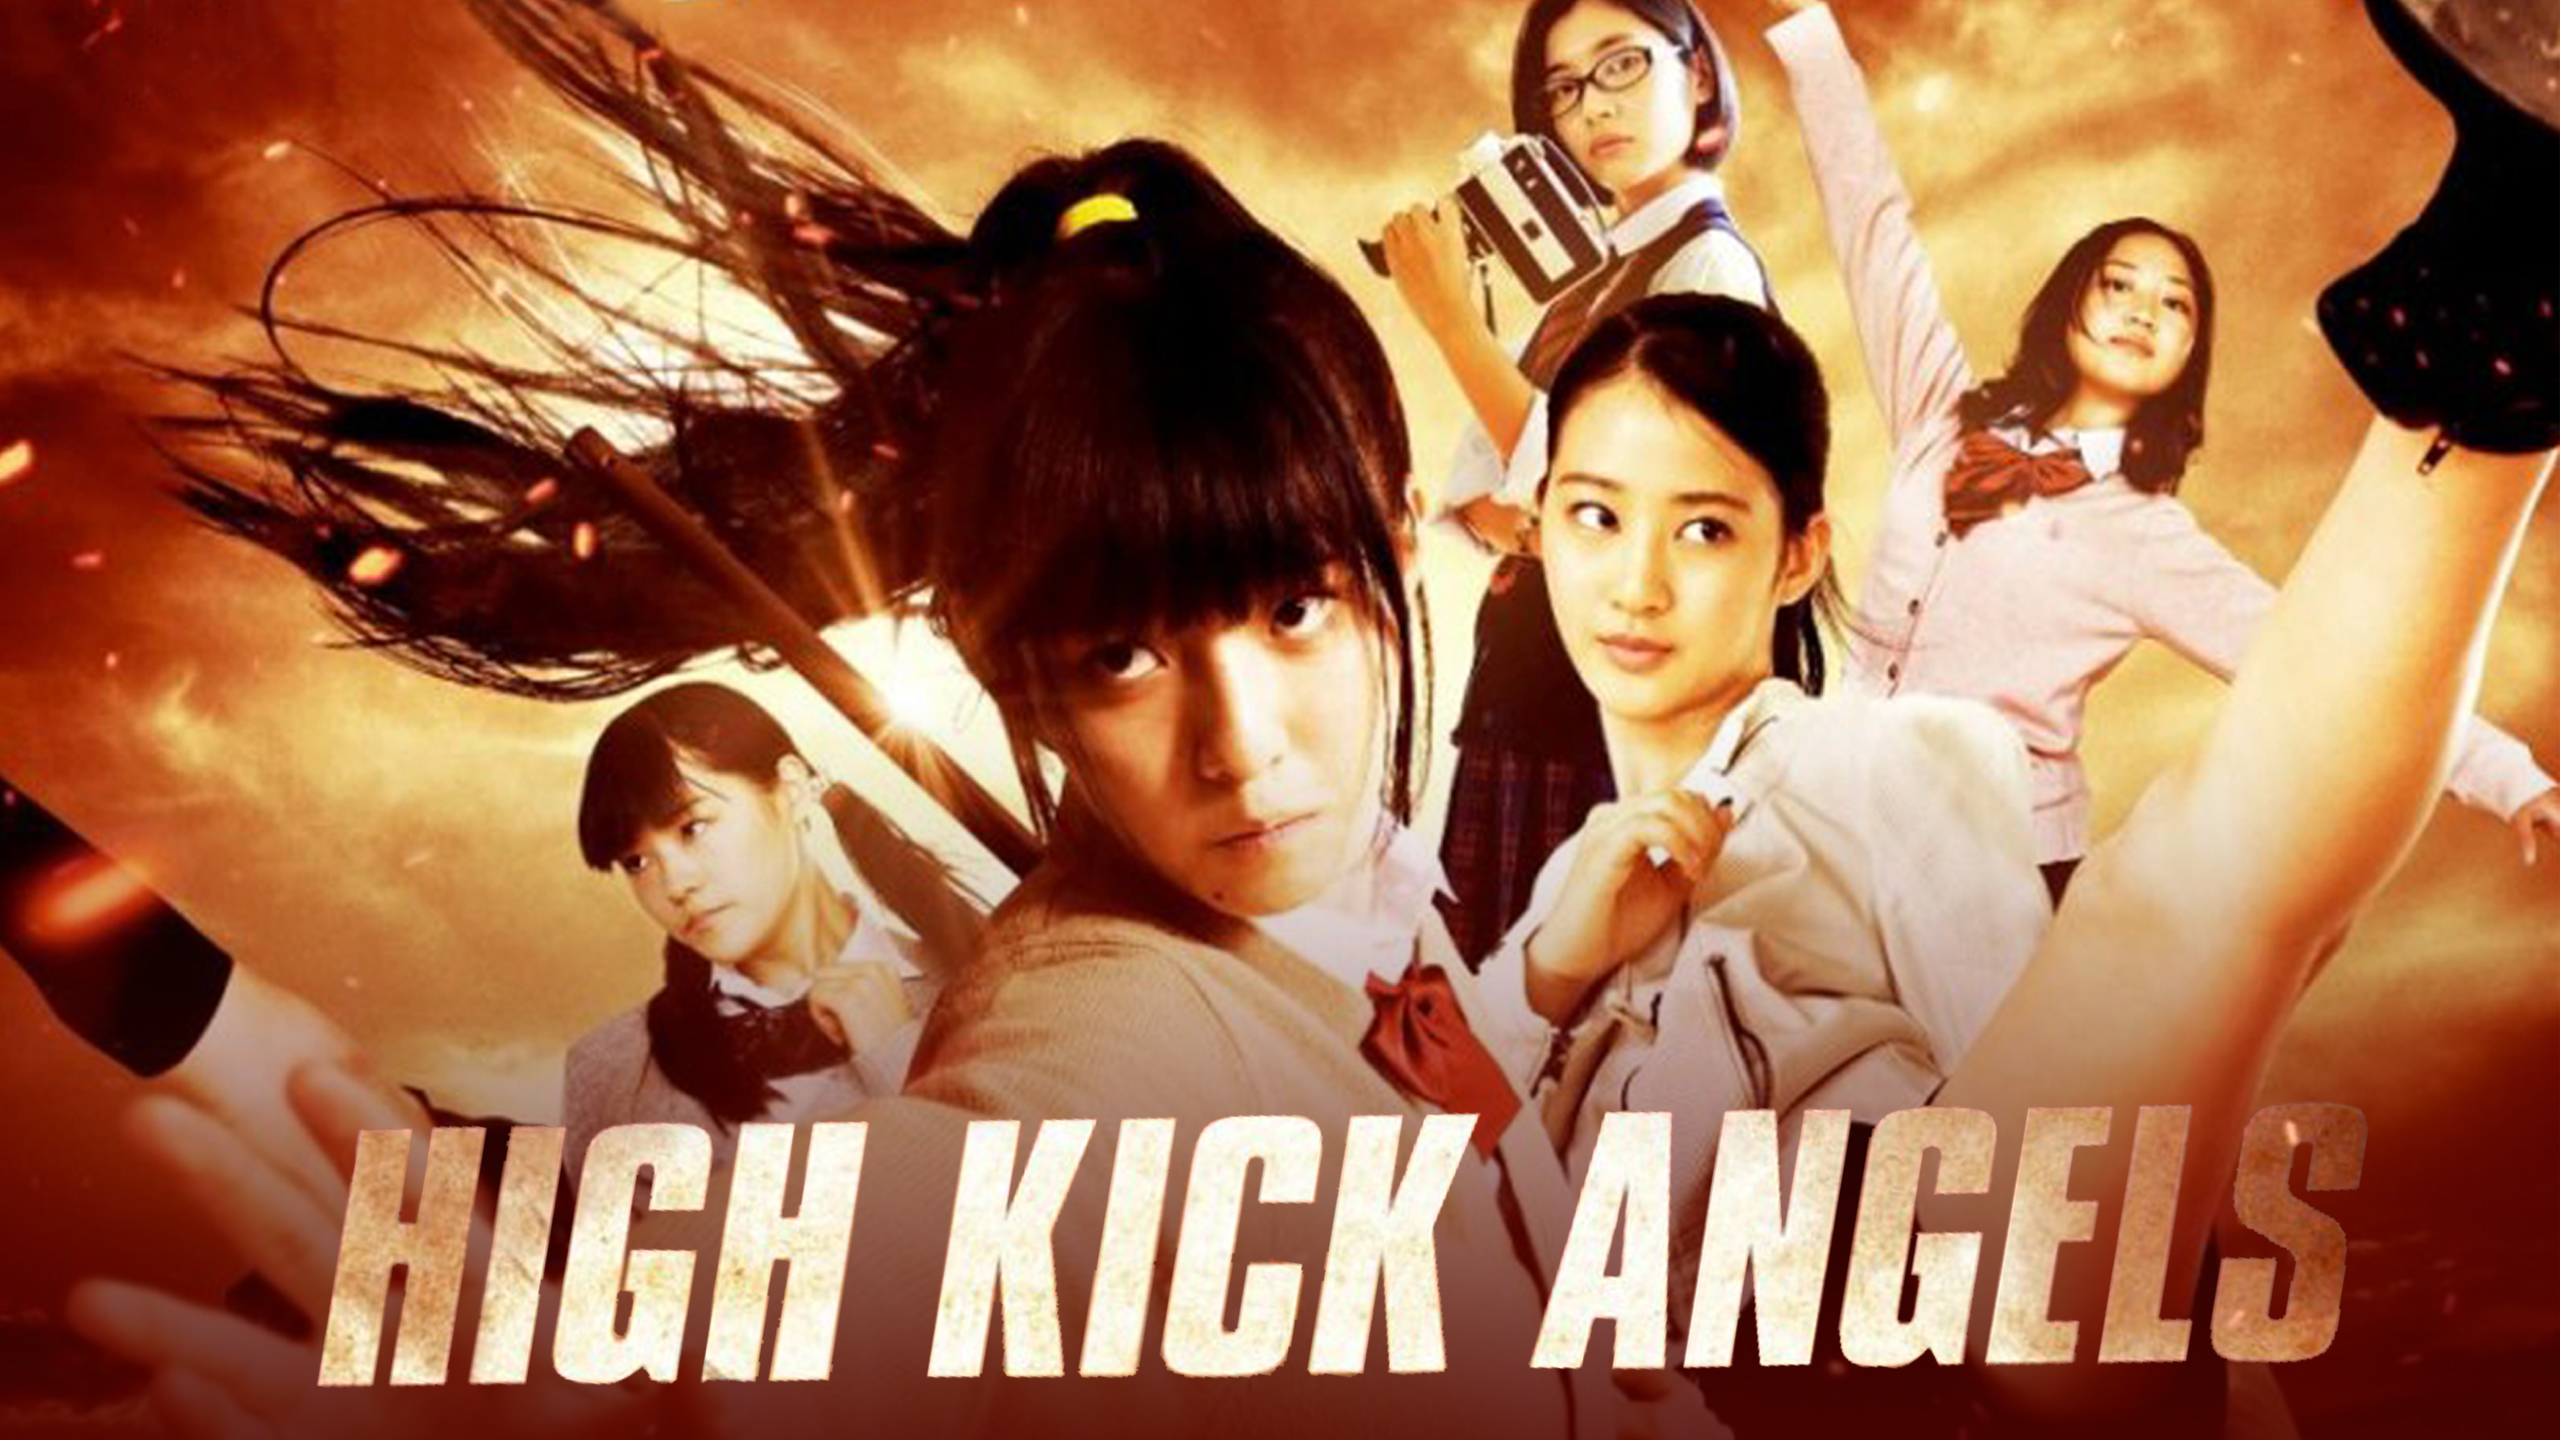 When thugs interrupt a high school film club's movie project, the girls put their high kicking skills to real life use. Directed by Kazuhiro Yokoyama.